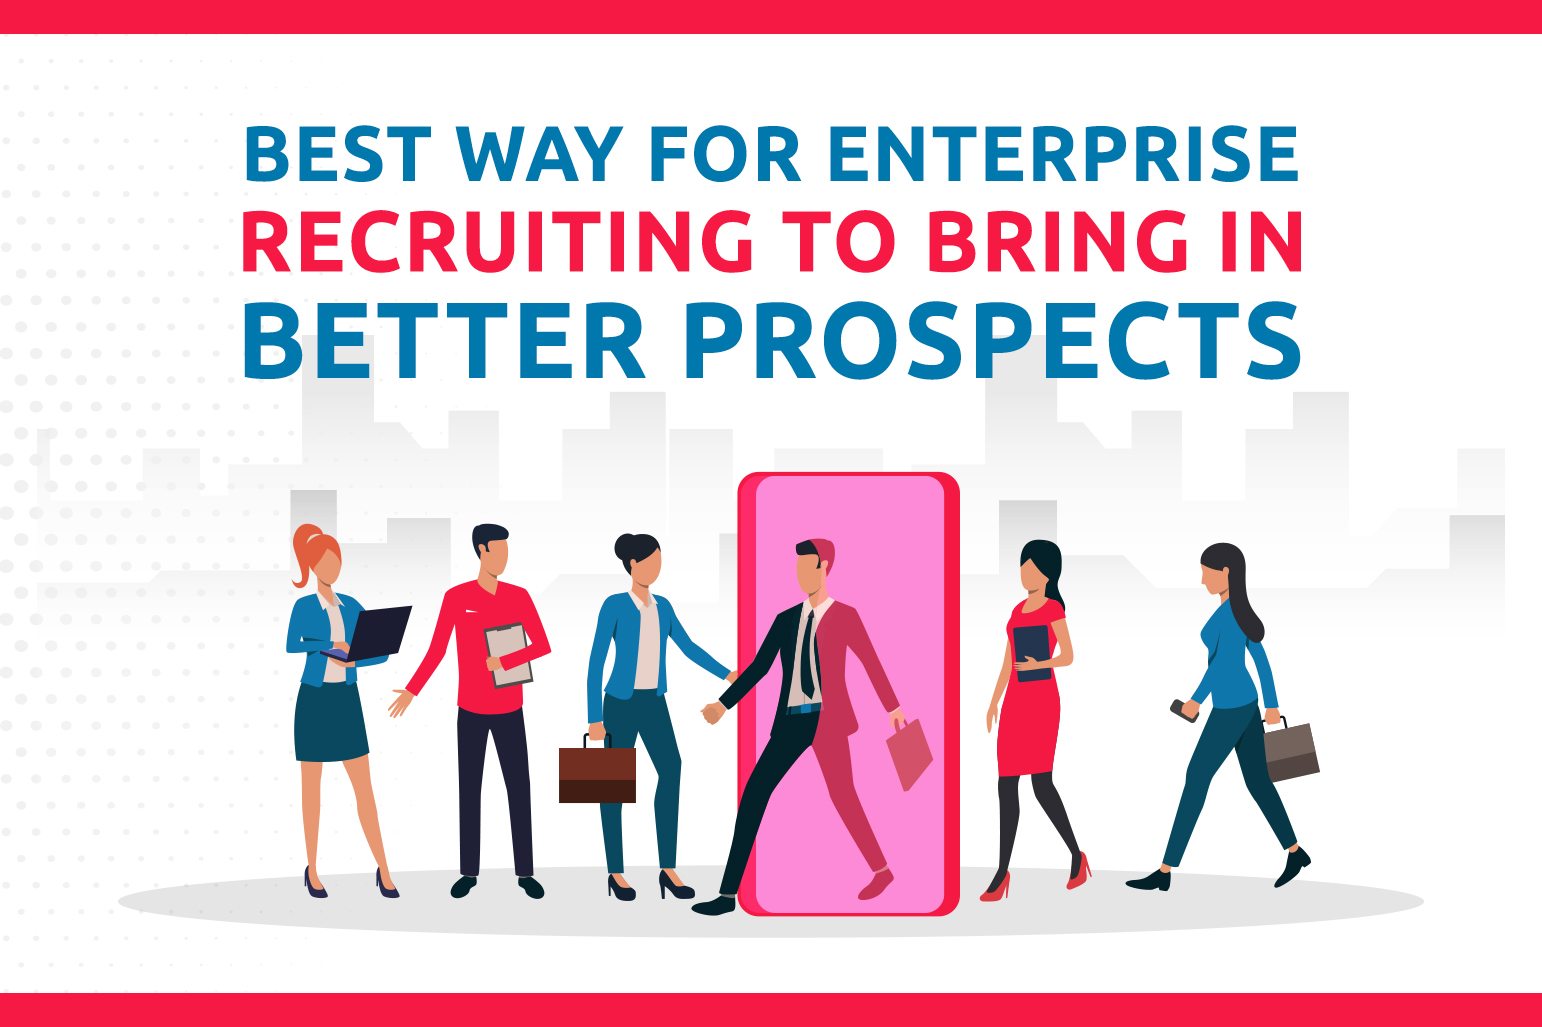 Best Way For Enterprise Recruiting To Bring In Better Prospects